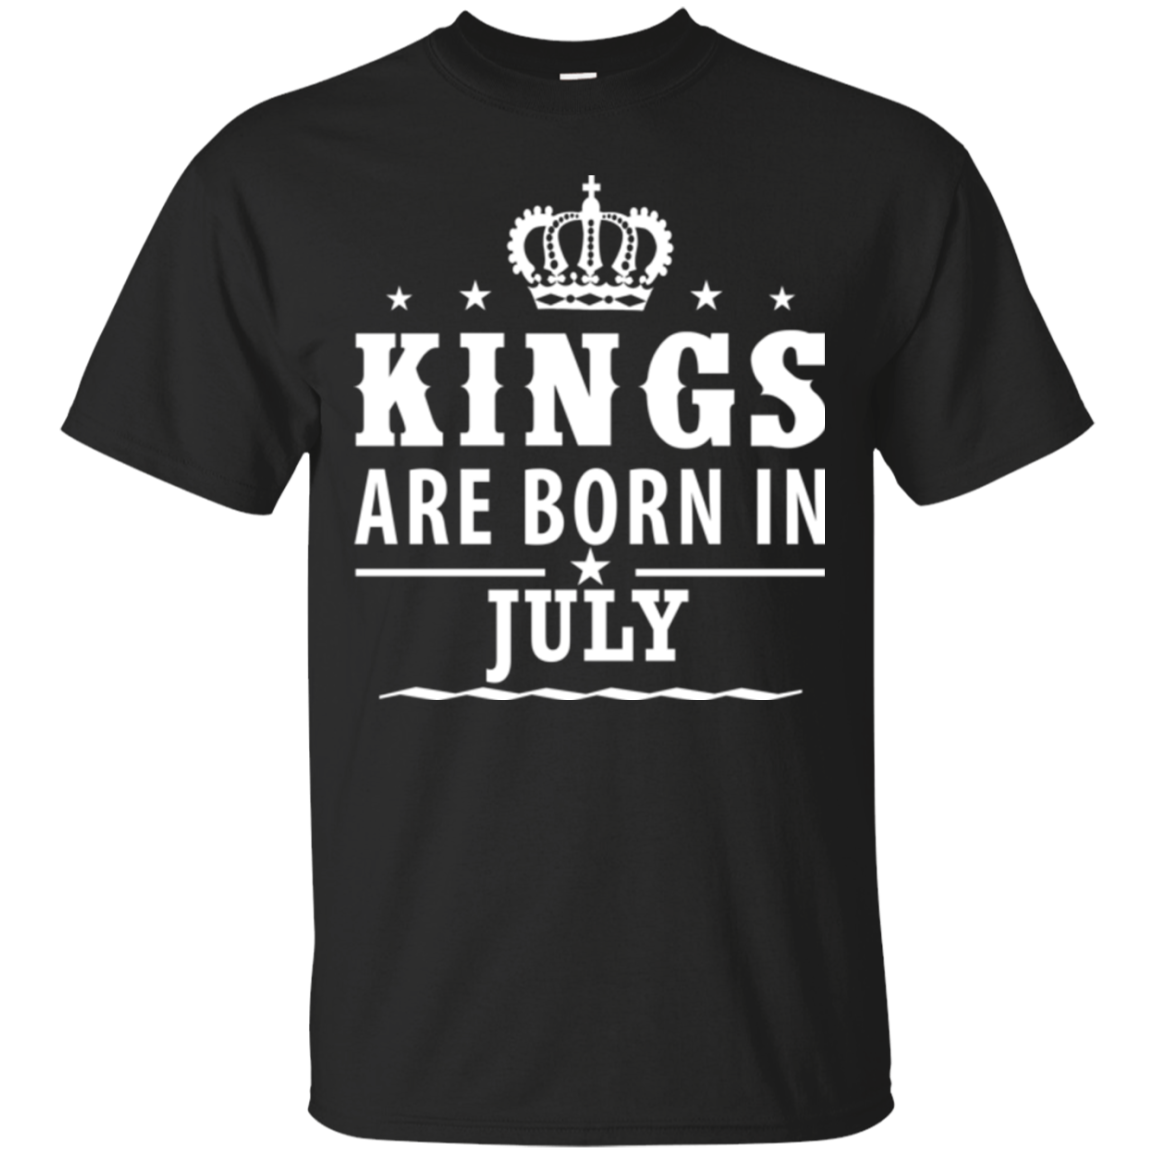 King T Shirts Kings Are Born In July Hoodies Sweatshirts